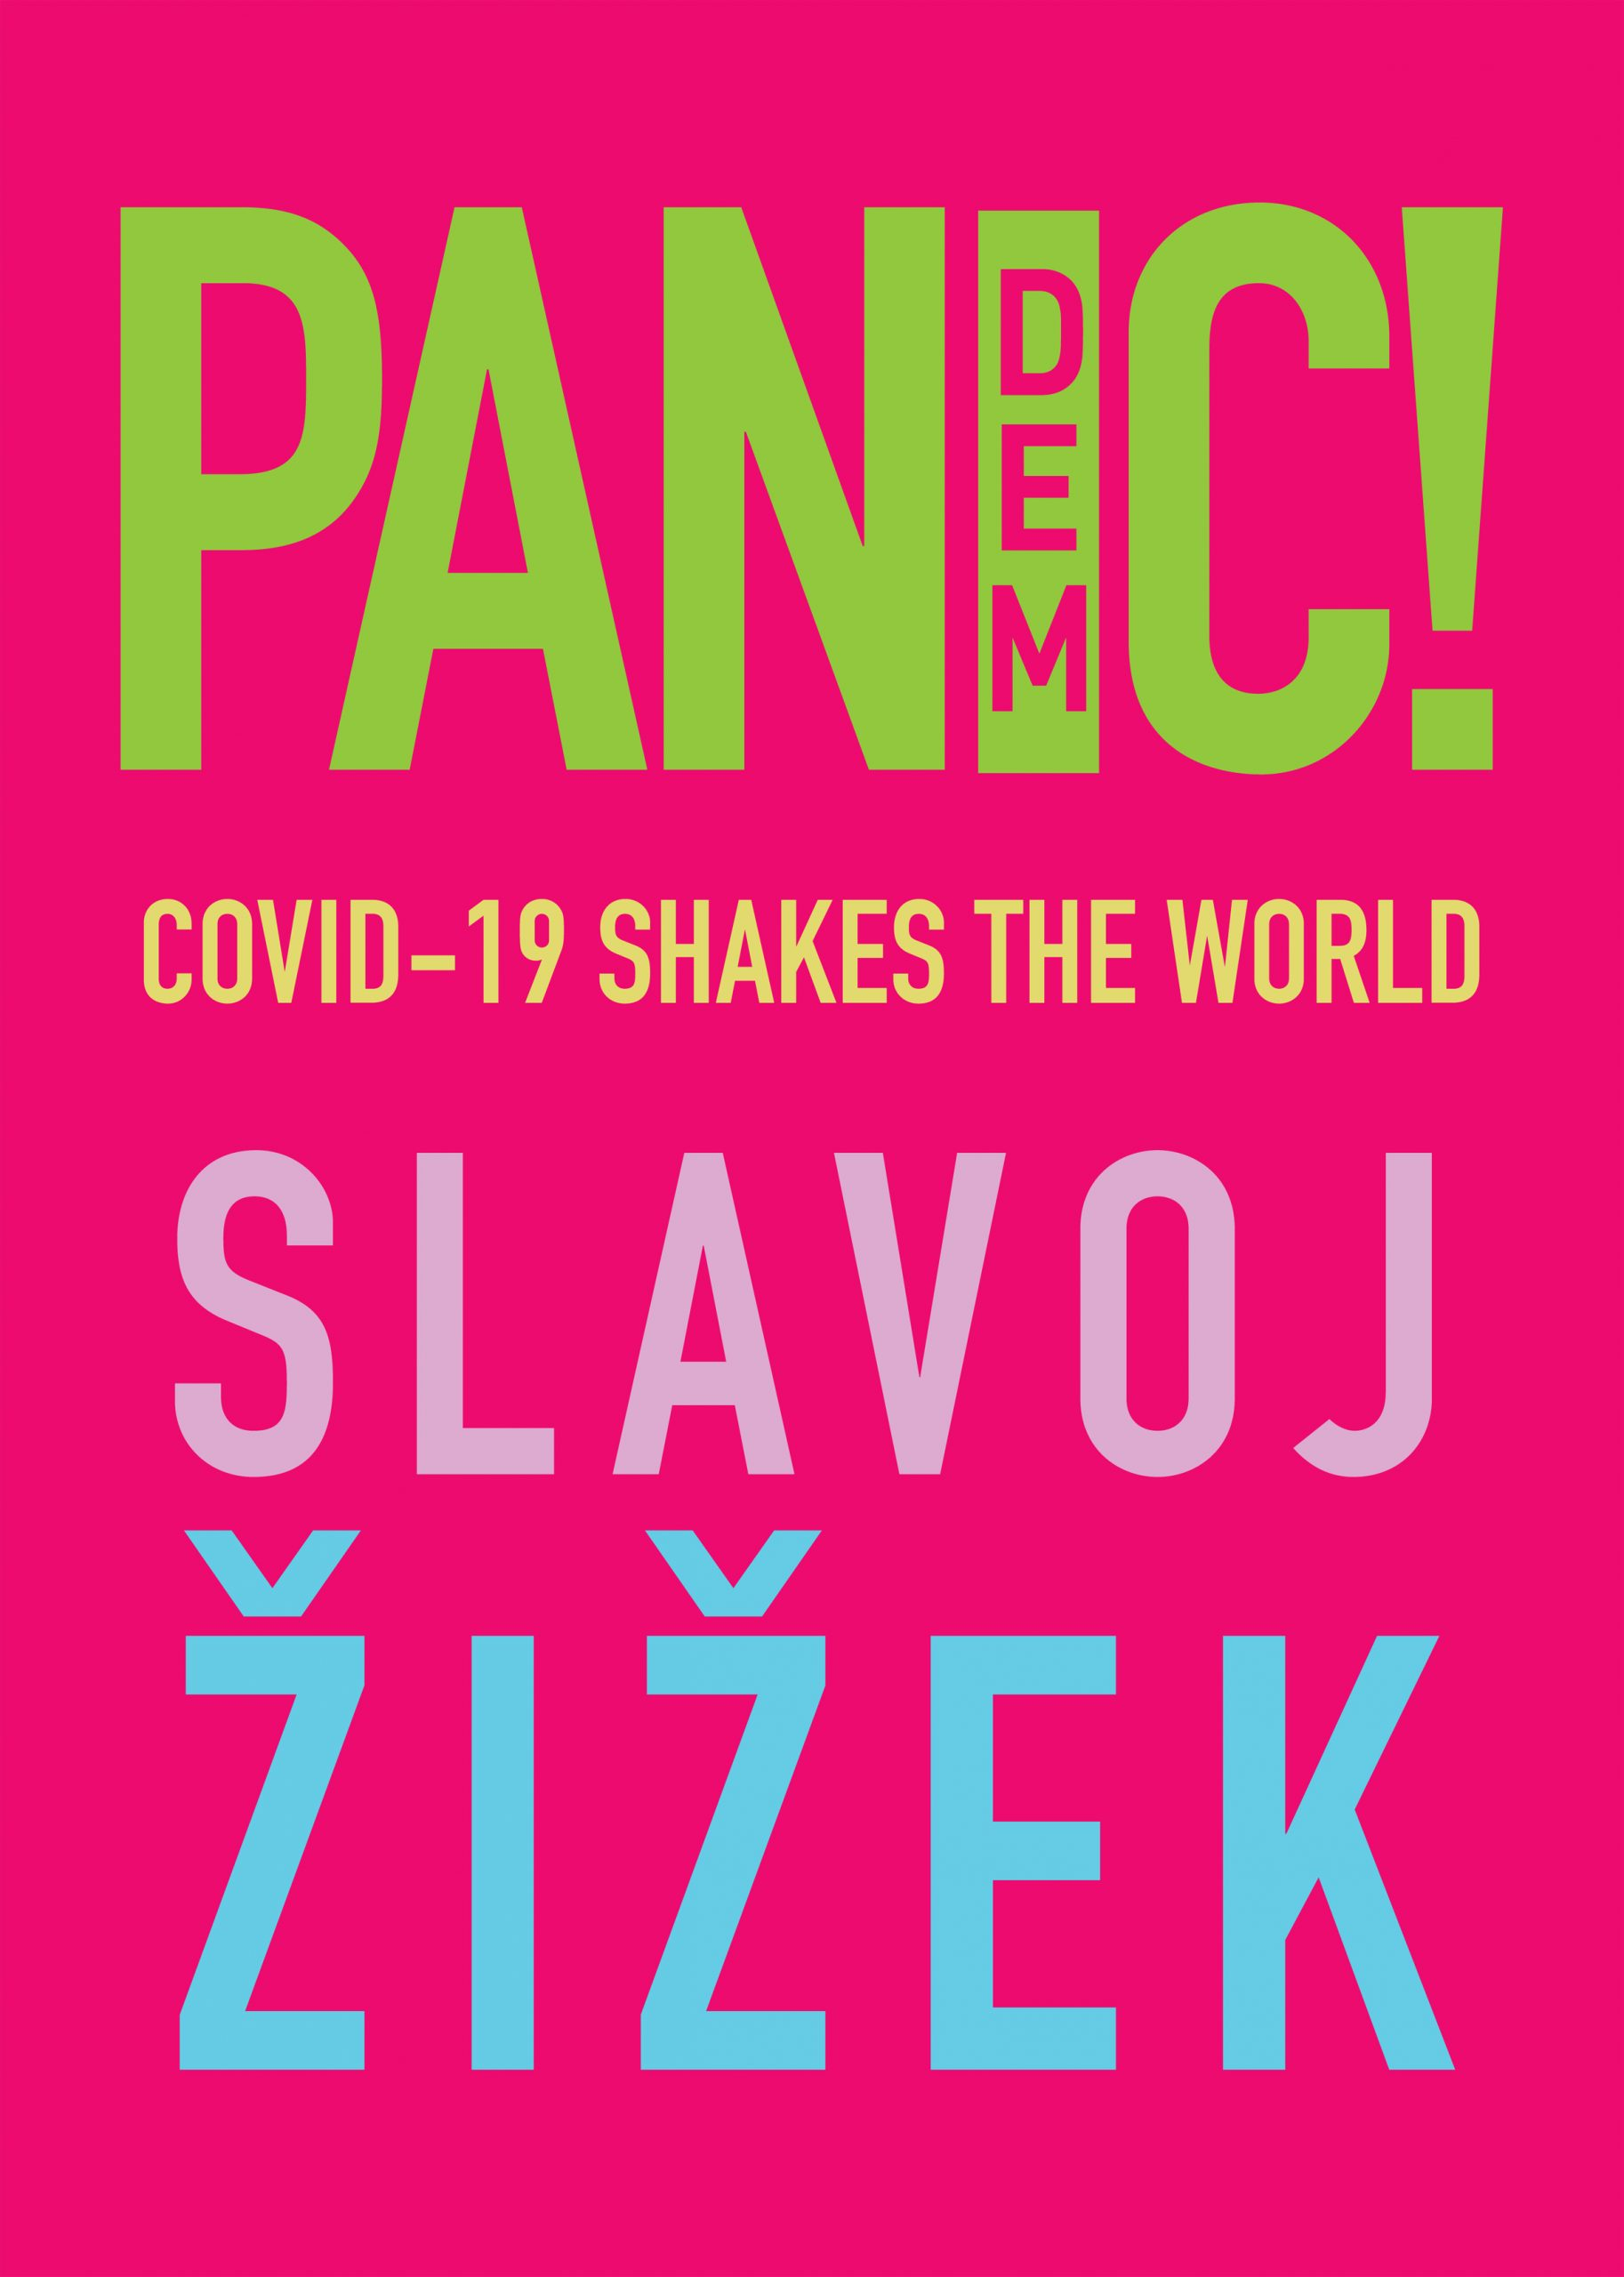 Žižek, Slavoj: Pandemic! Covid-19 shakes the world, 2020